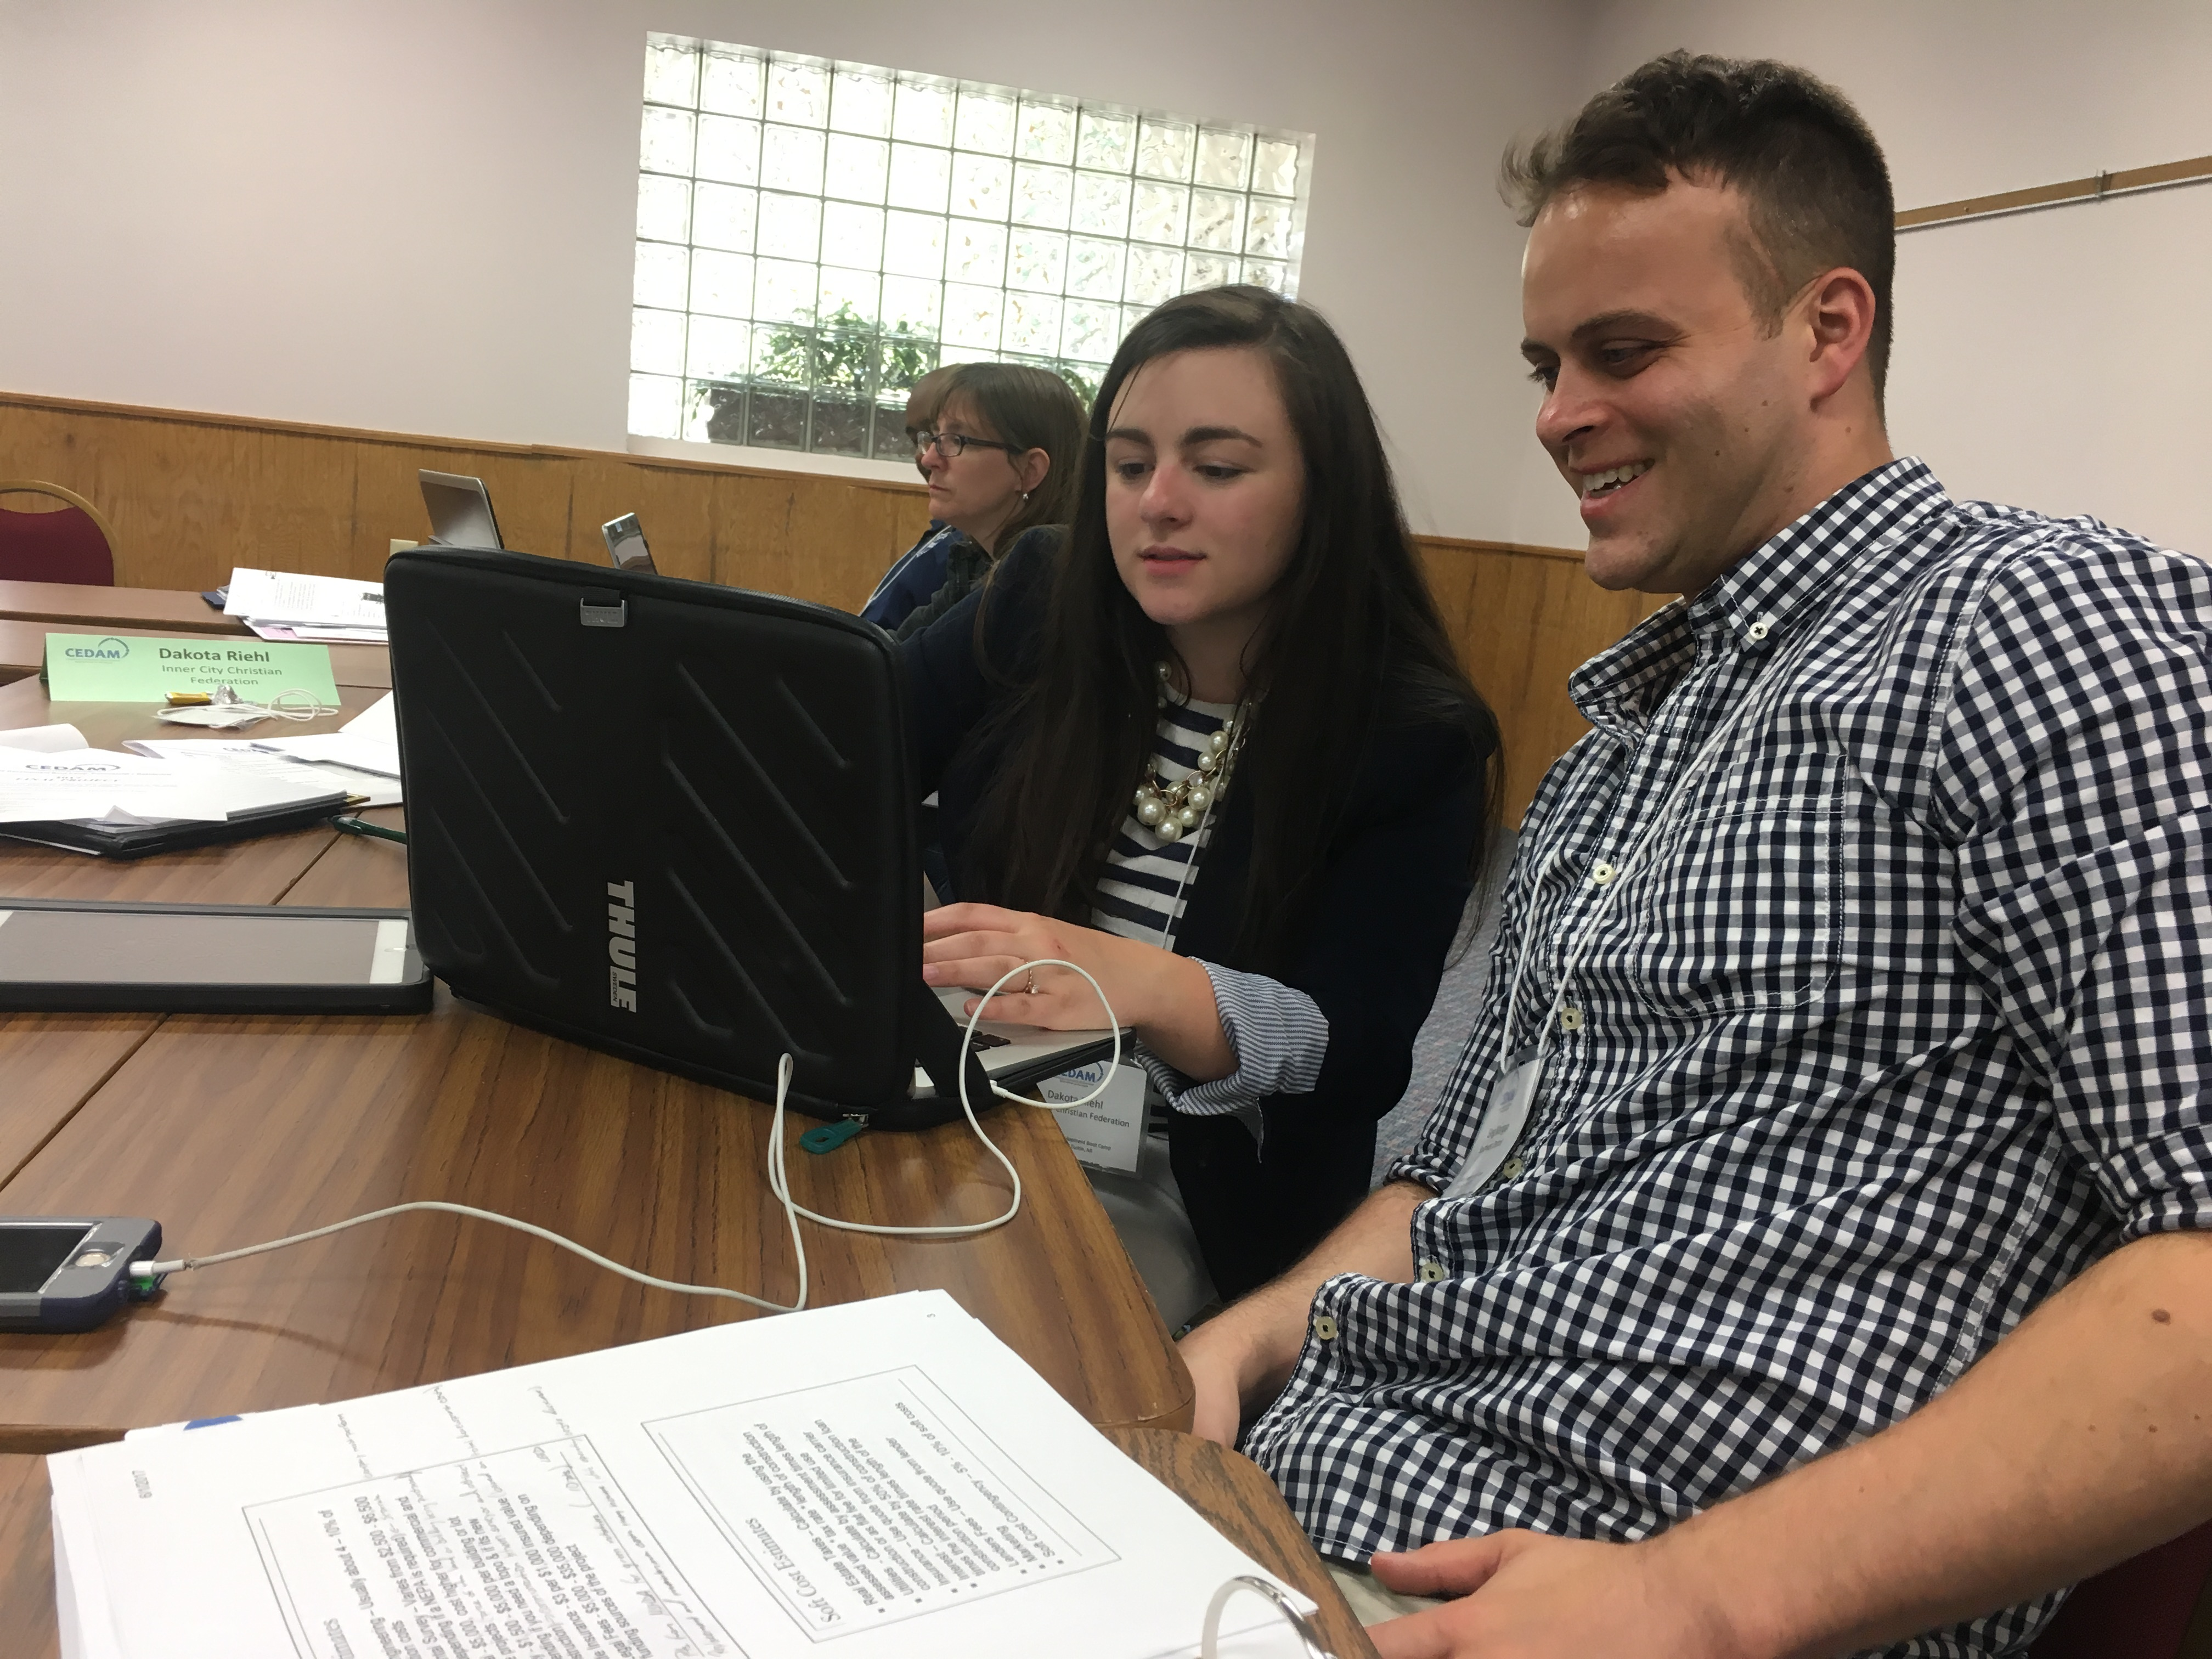 Dakota Riehl (Inner City Christian Federation) and group member Greg Mangan (Southwest Detroit) work together on their final project.